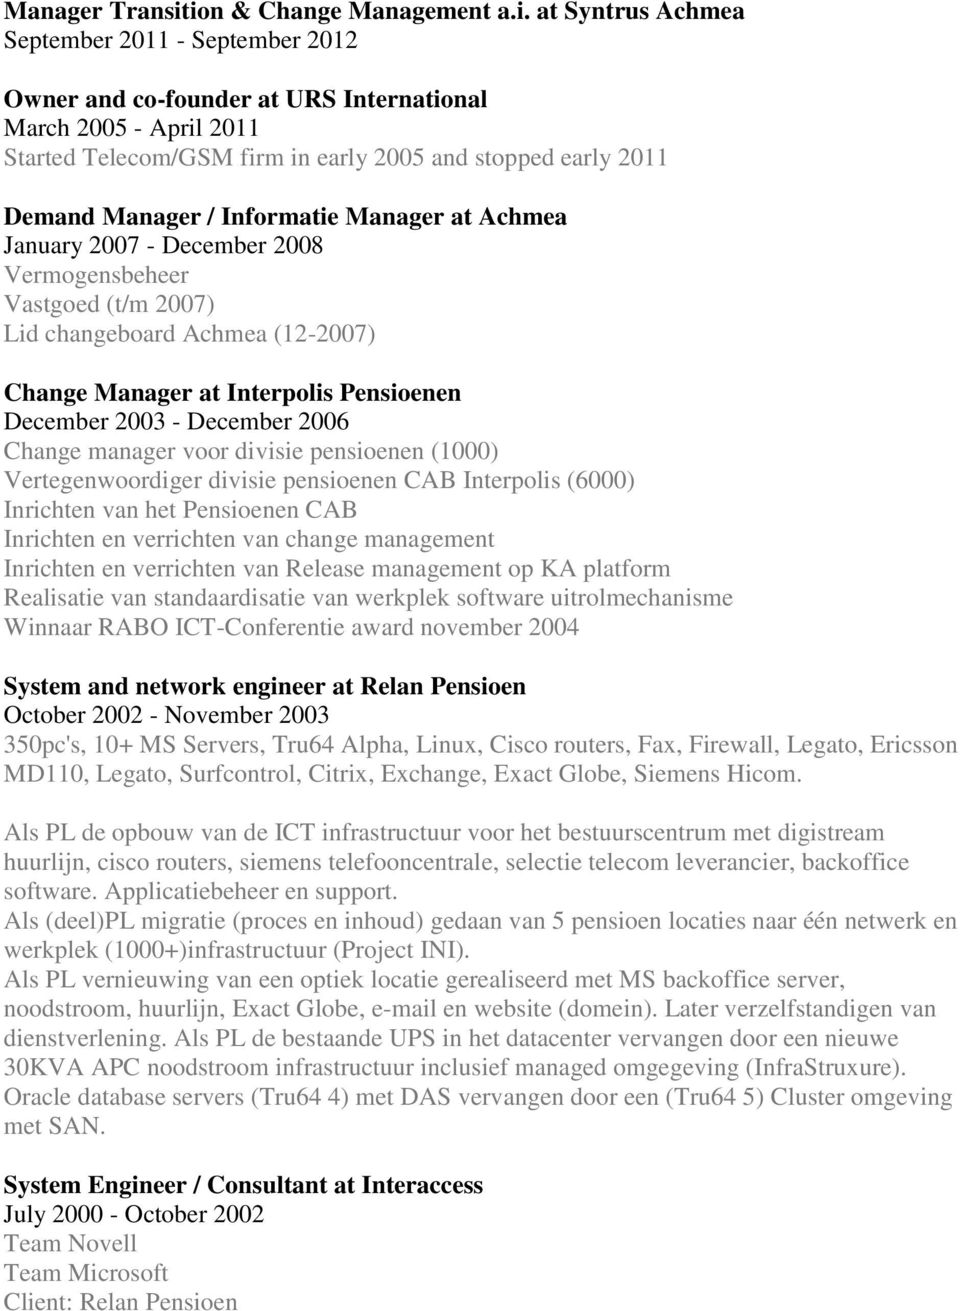 early 2011 Demand Manager / Informatie Manager at Achmea January 2007 - December 2008 Vermogensbeheer Vastgoed (t/m 2007) Lid changeboard Achmea (12-2007) Change Manager at Interpolis Pensioenen